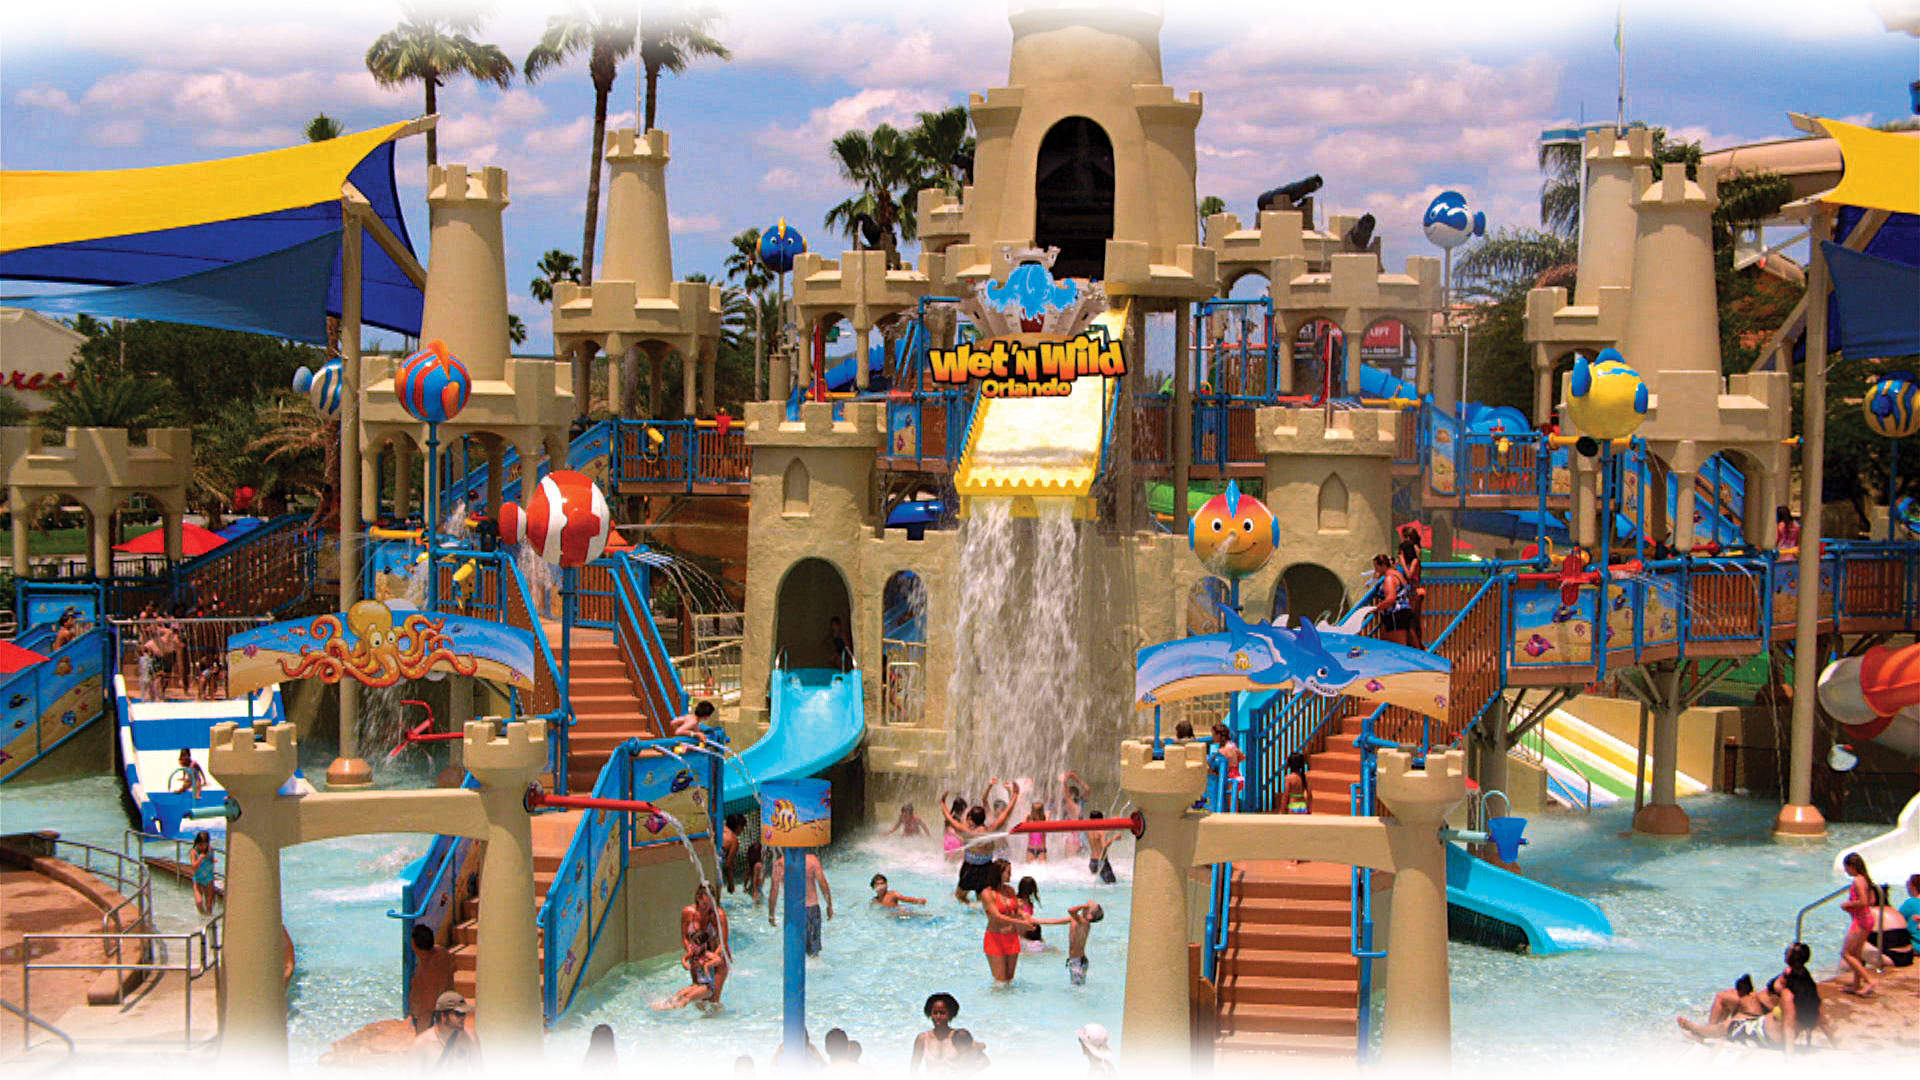 Wetn_Wild_Blast_Away__orlando_beach_waterpark_american_vacation_living - disney